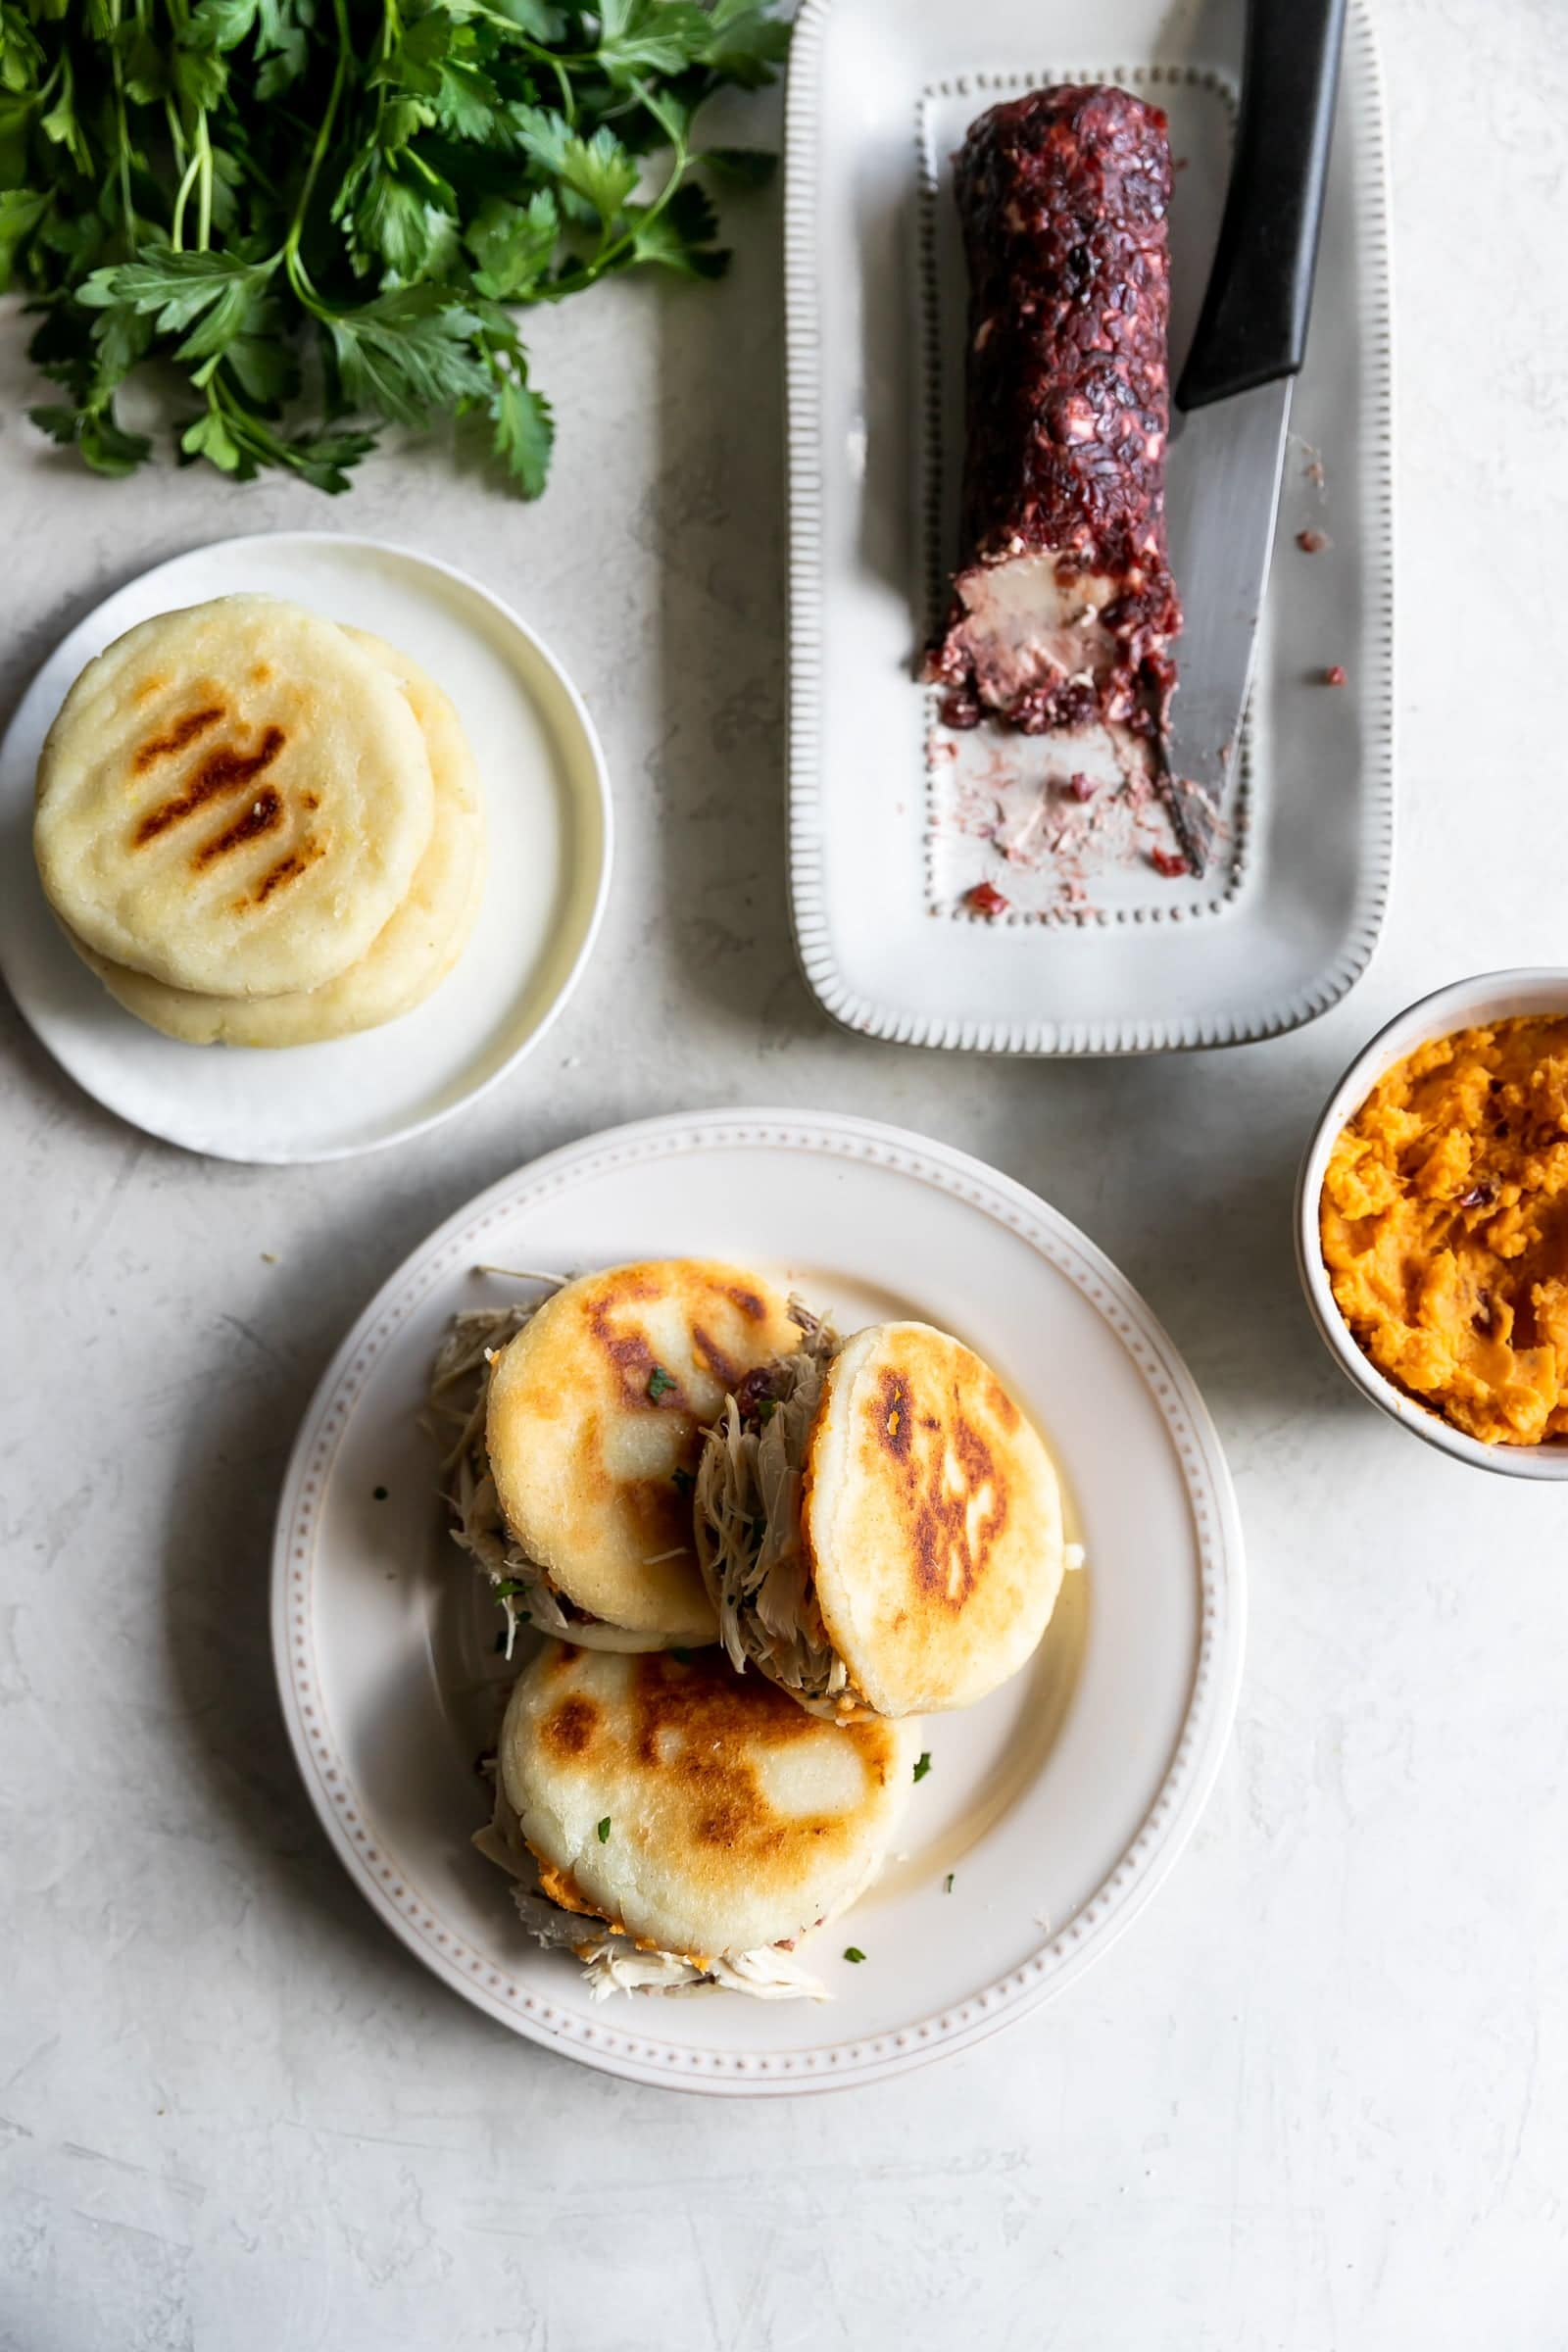 Easy-to-make arepas (pan fried corn cakes) made with homemade cranberry goat cheese and your favorite Thanksgiving leftovers!